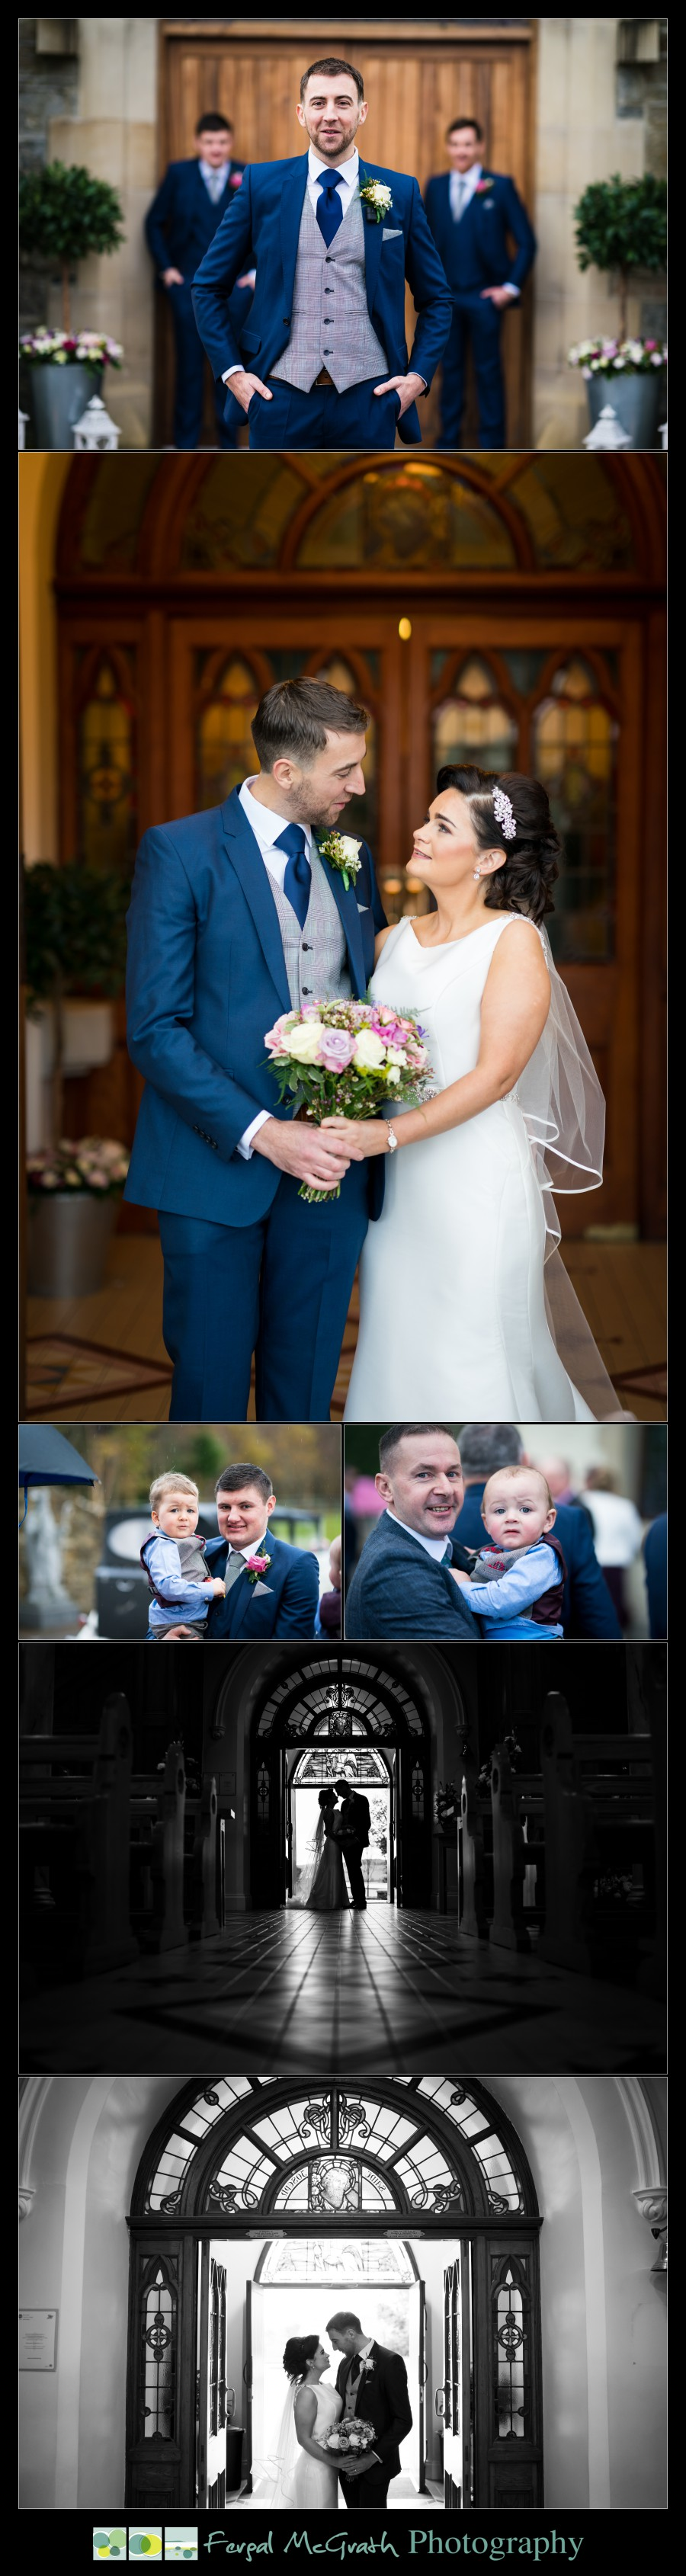 Silver Tassie Hotel Letterkenny Winter Wedding bride and groom at the church